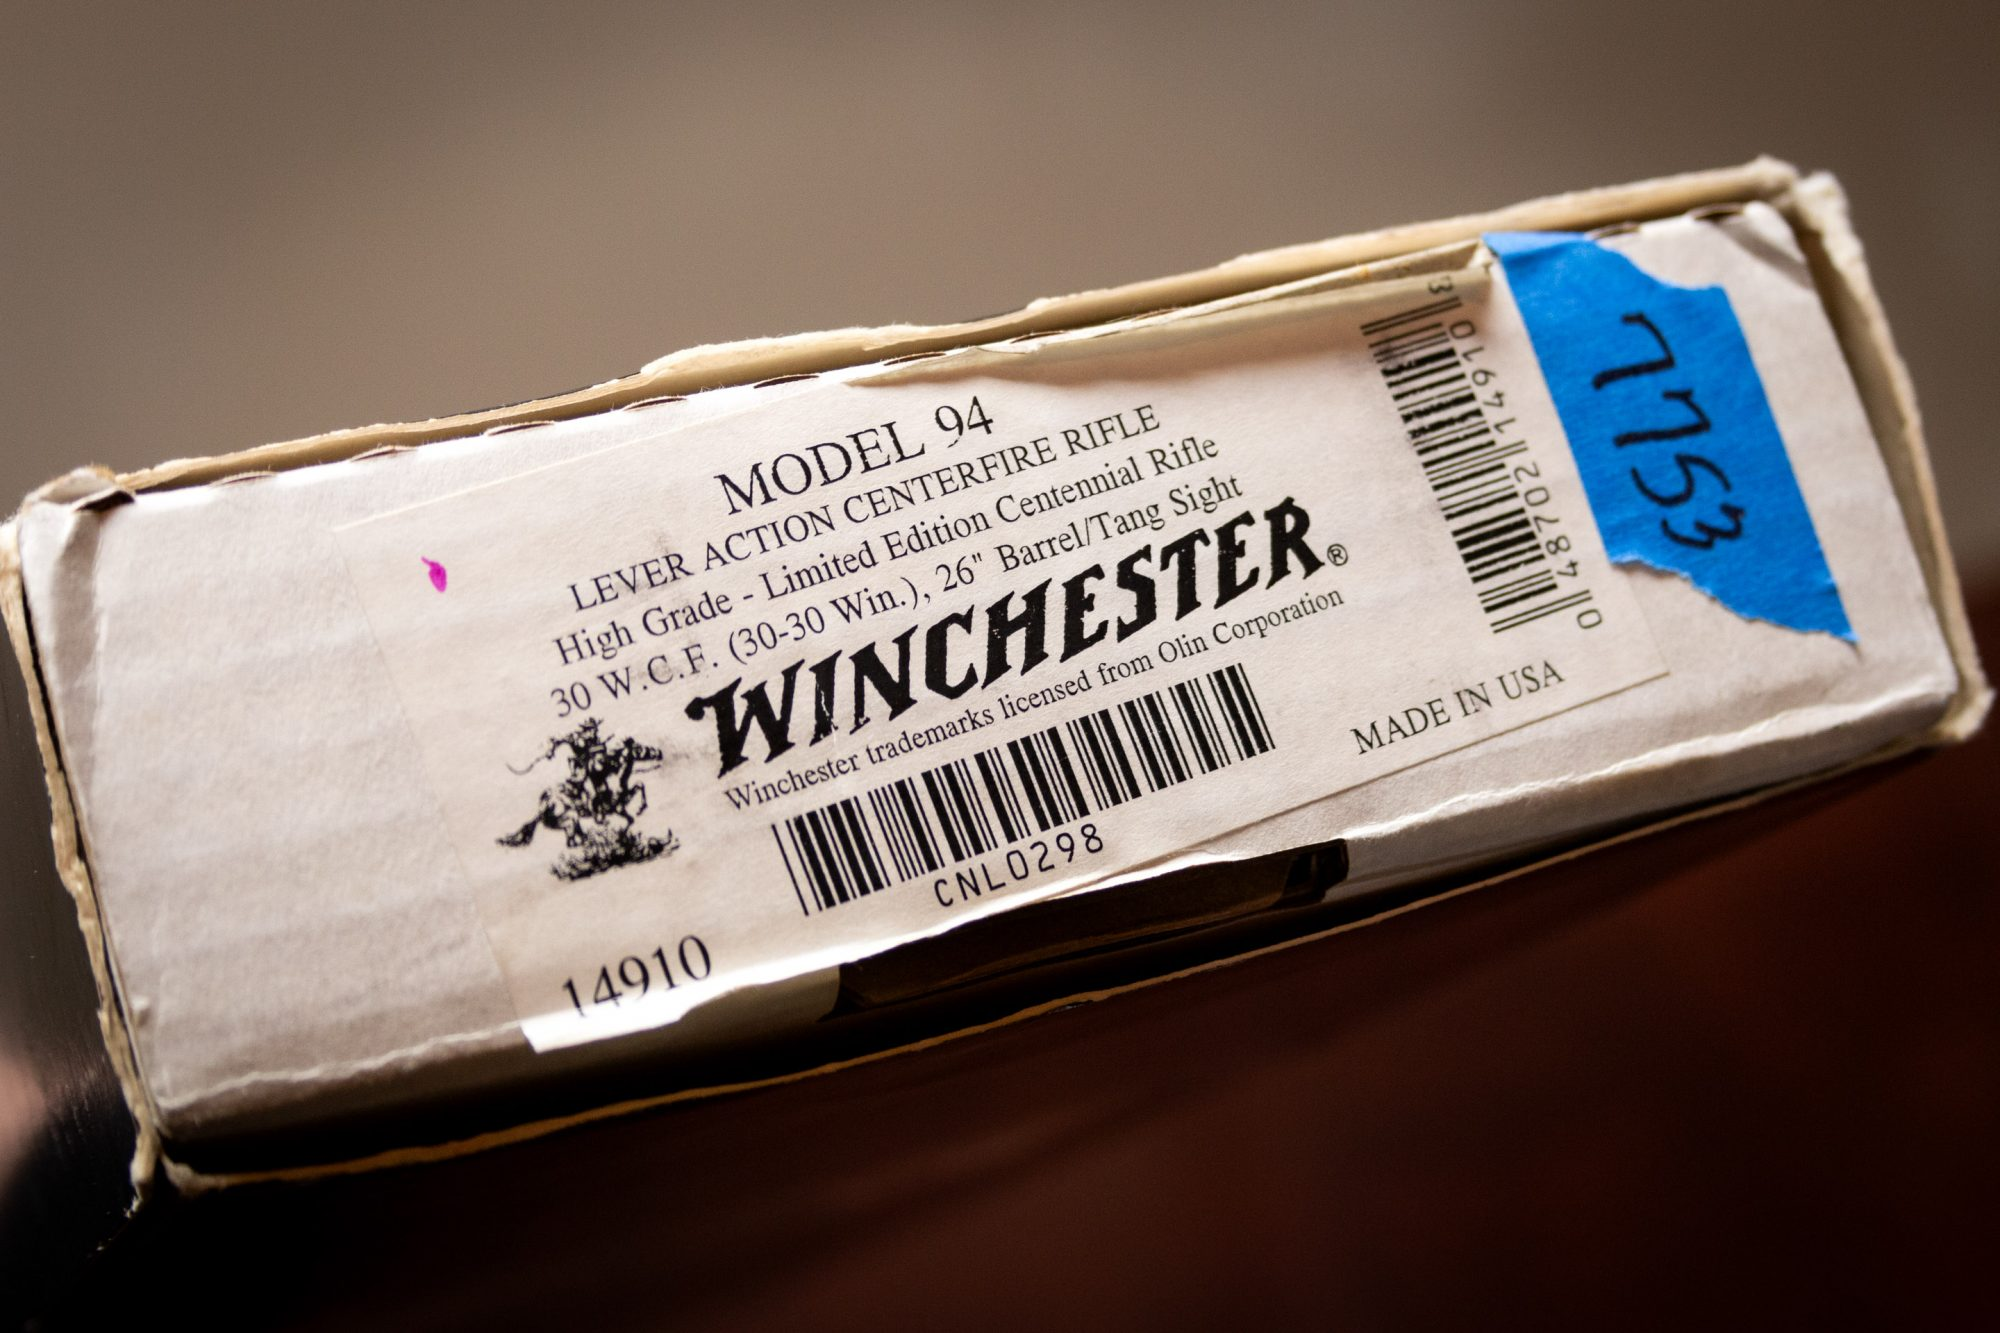 Photo of a pre-owned Winchester Model 94 Limited Edition High Grade Centennial Rifle box